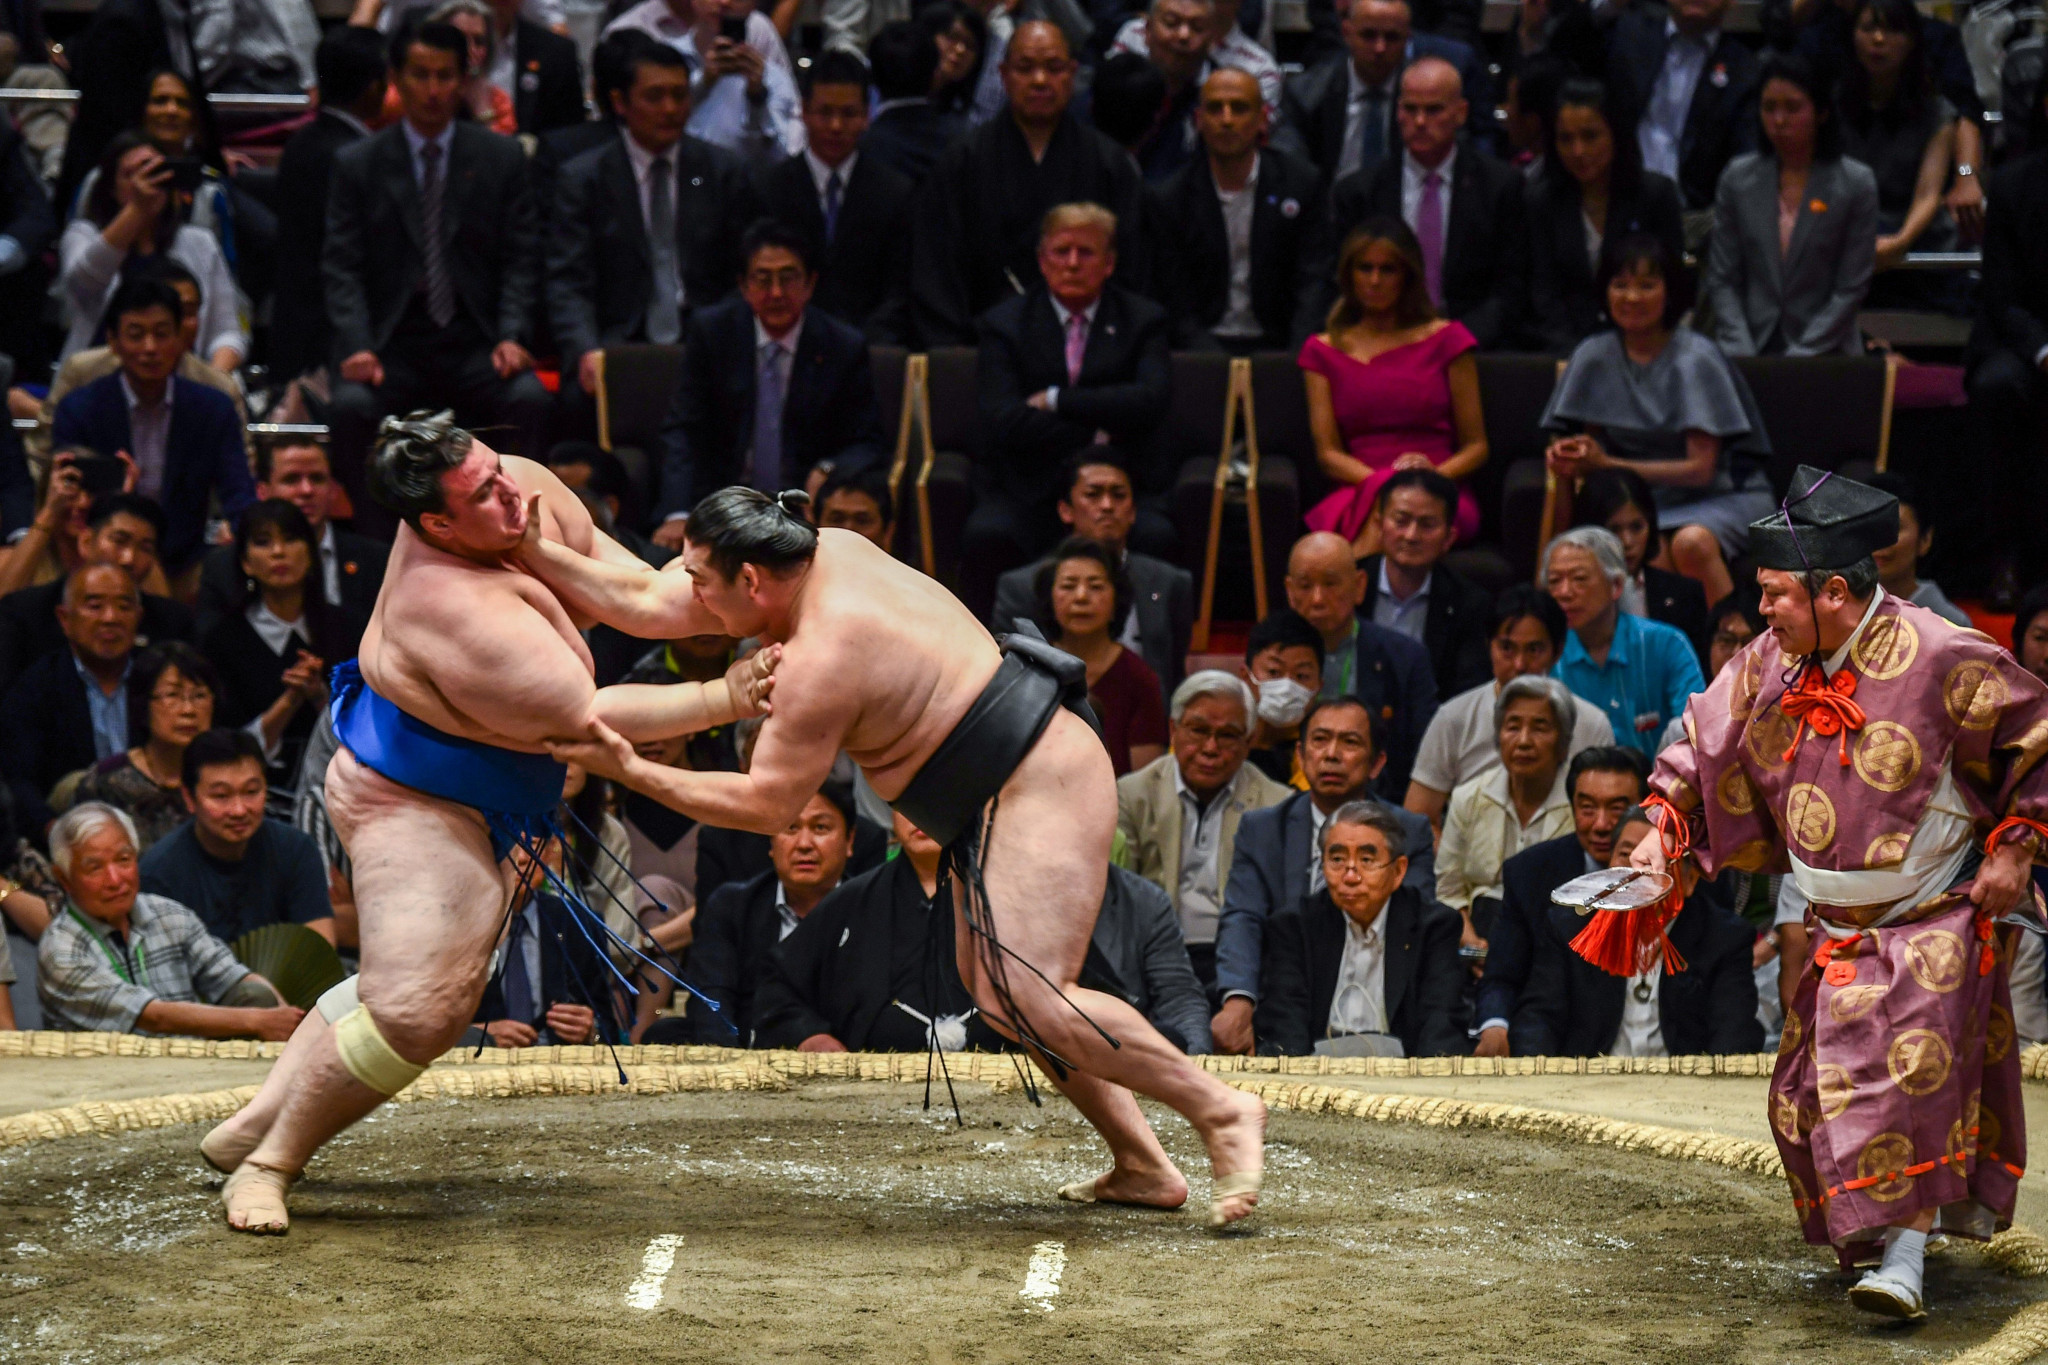 The Grand Sumo tournament has been confirmed as an addition to the calendar ©Getty Images